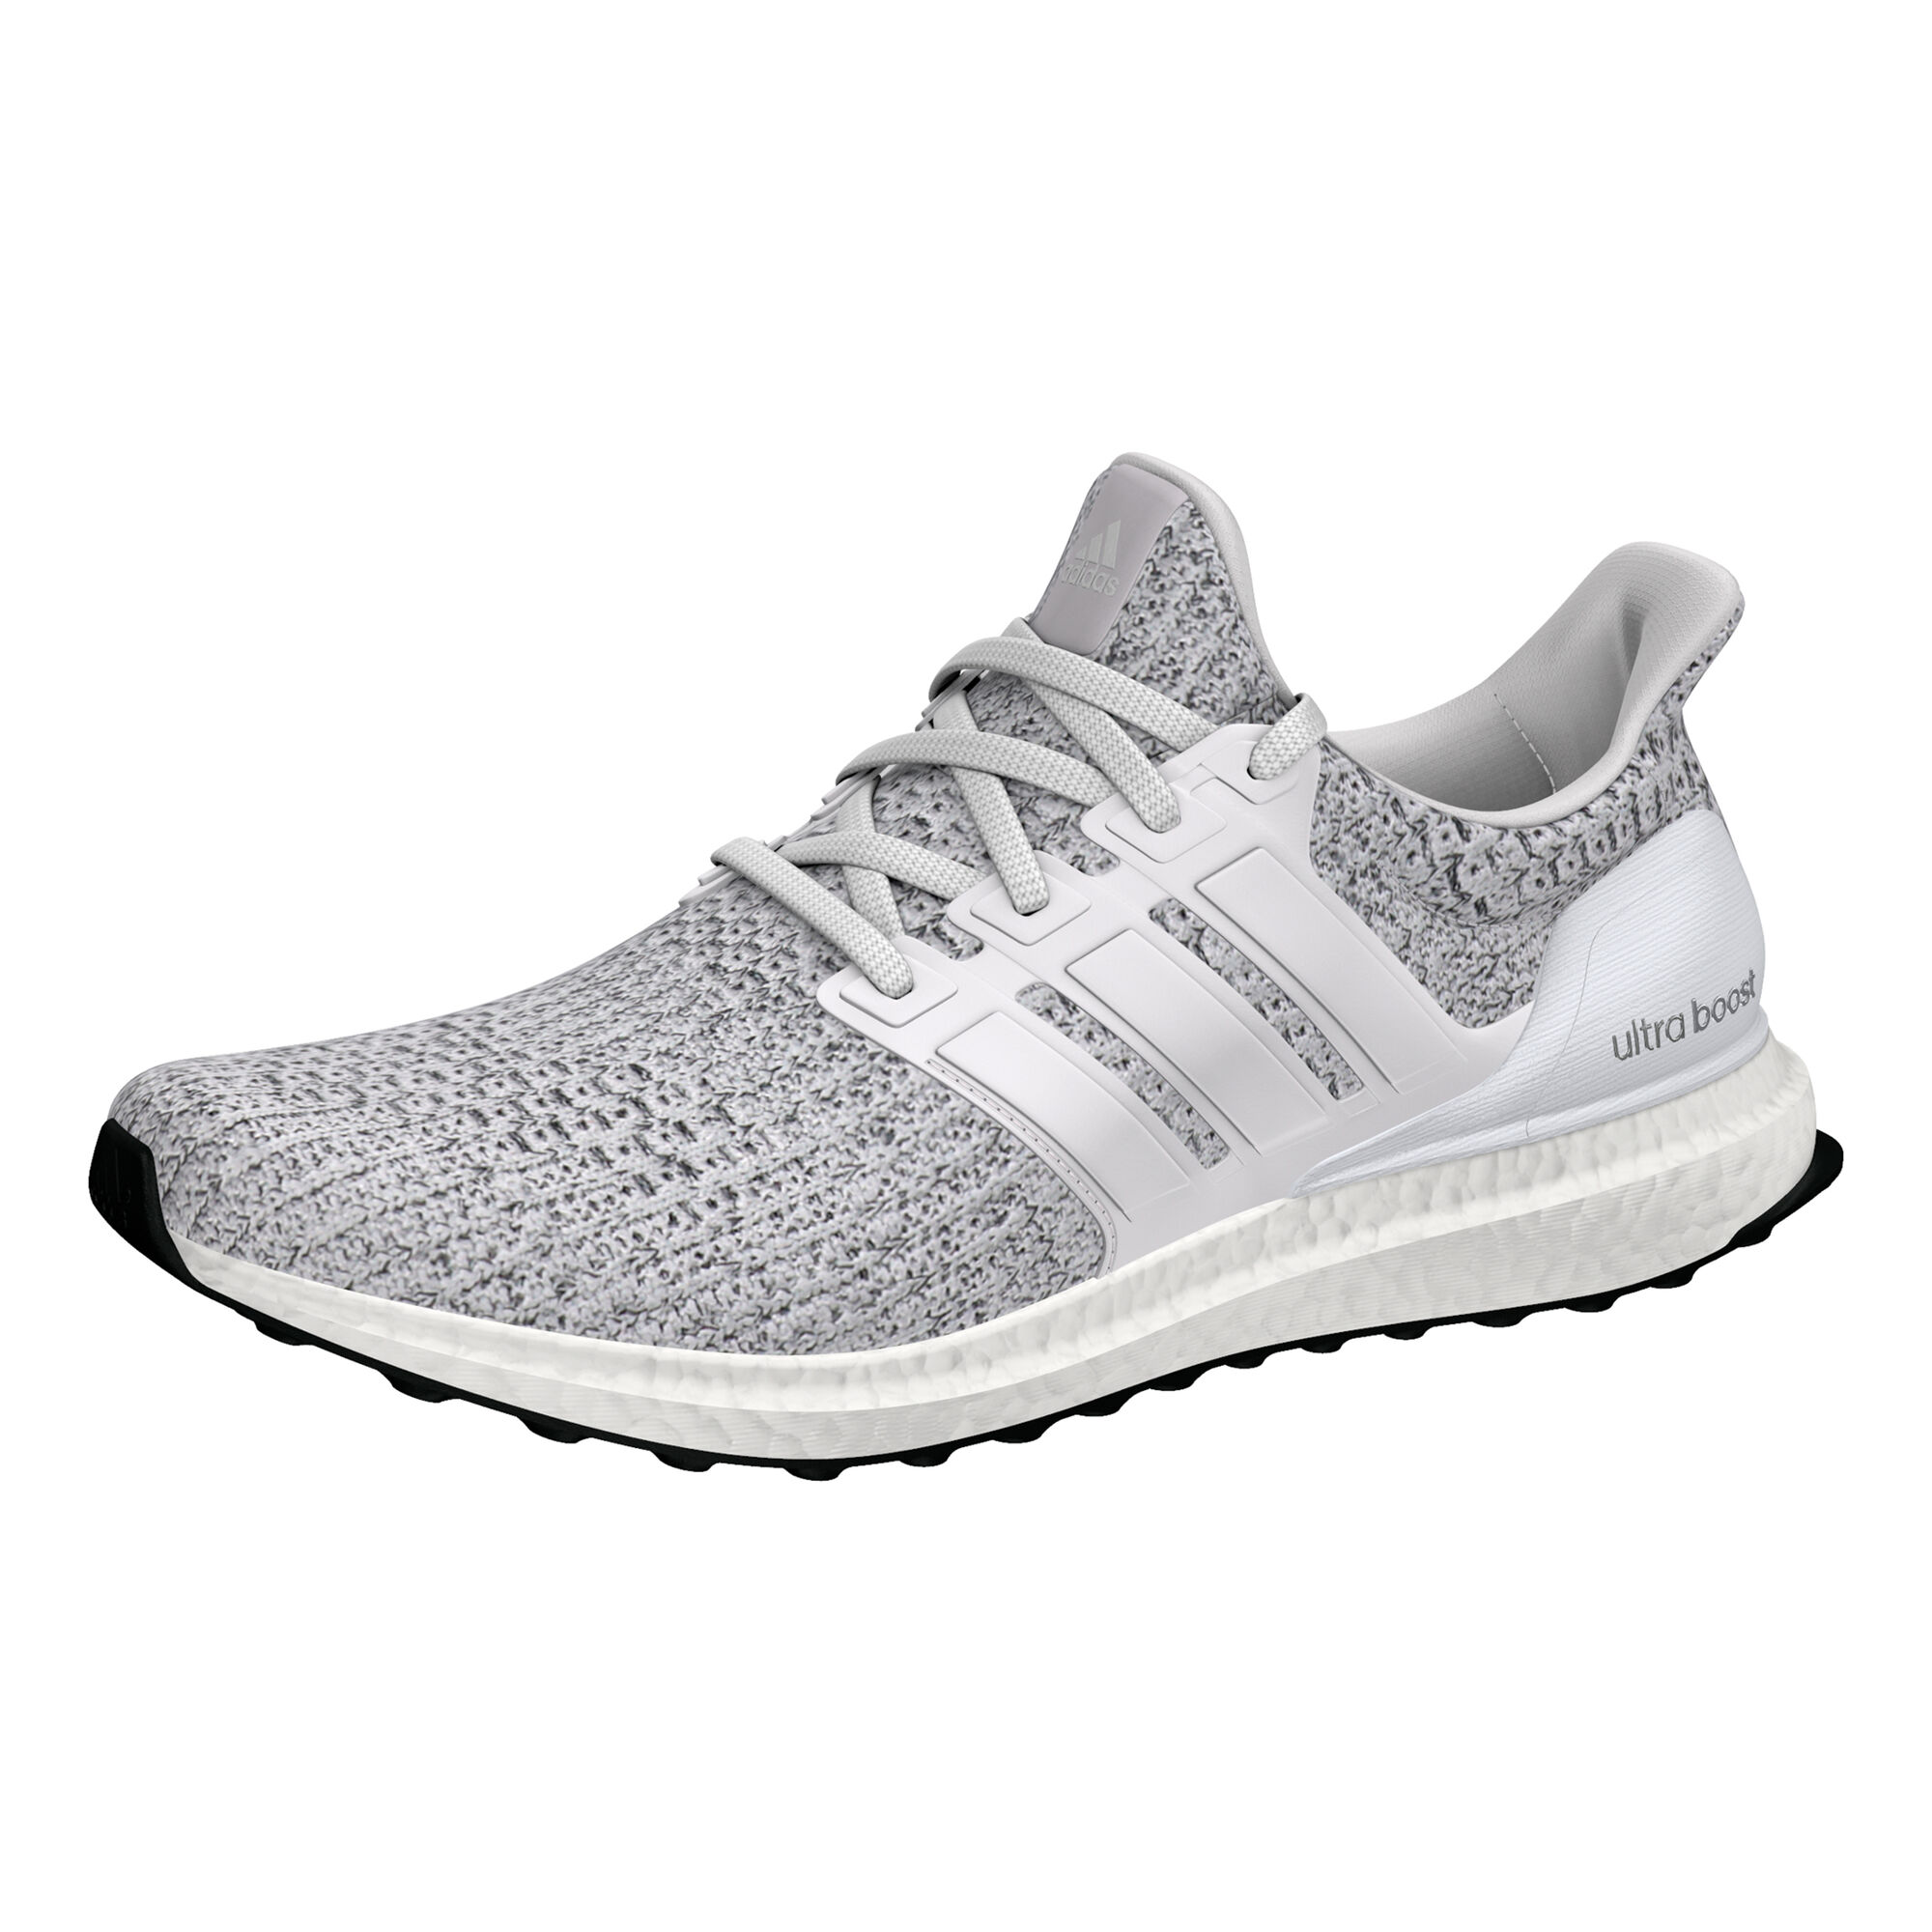 7960551a0 buy adidas Ultra Boost Neutral Running Shoe Women - White